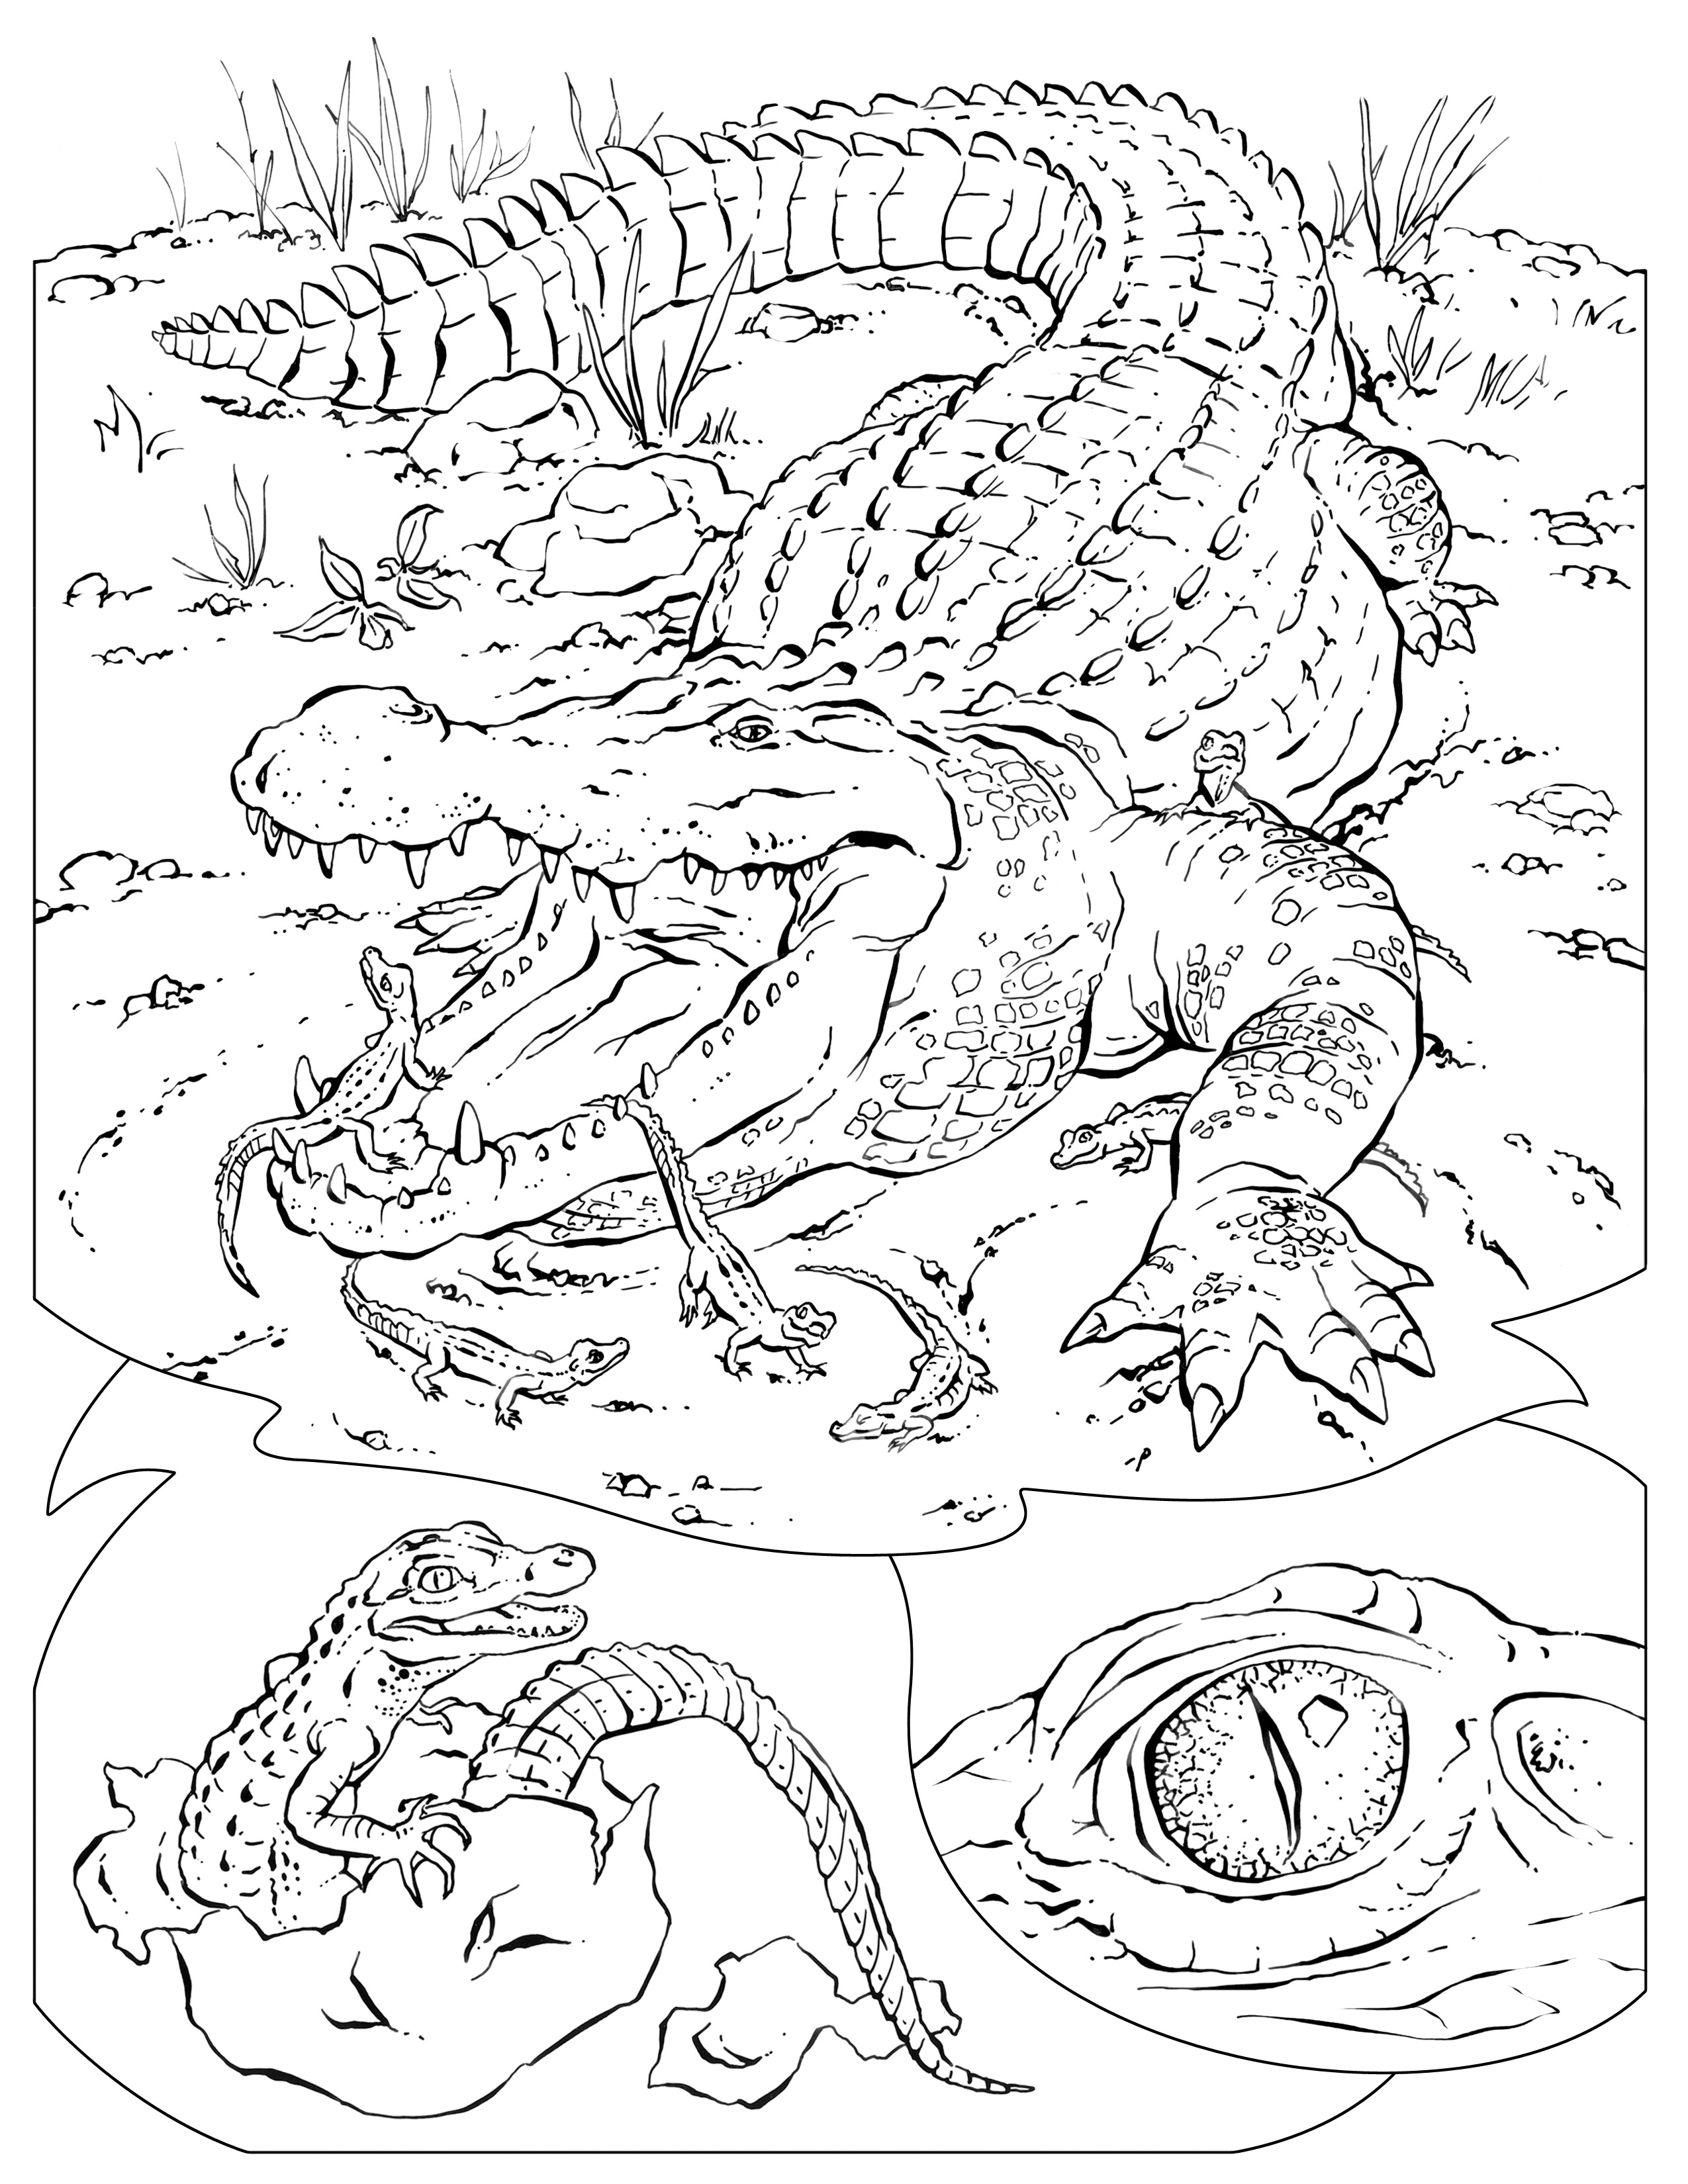 Wildlife coloring pages to download and print for free